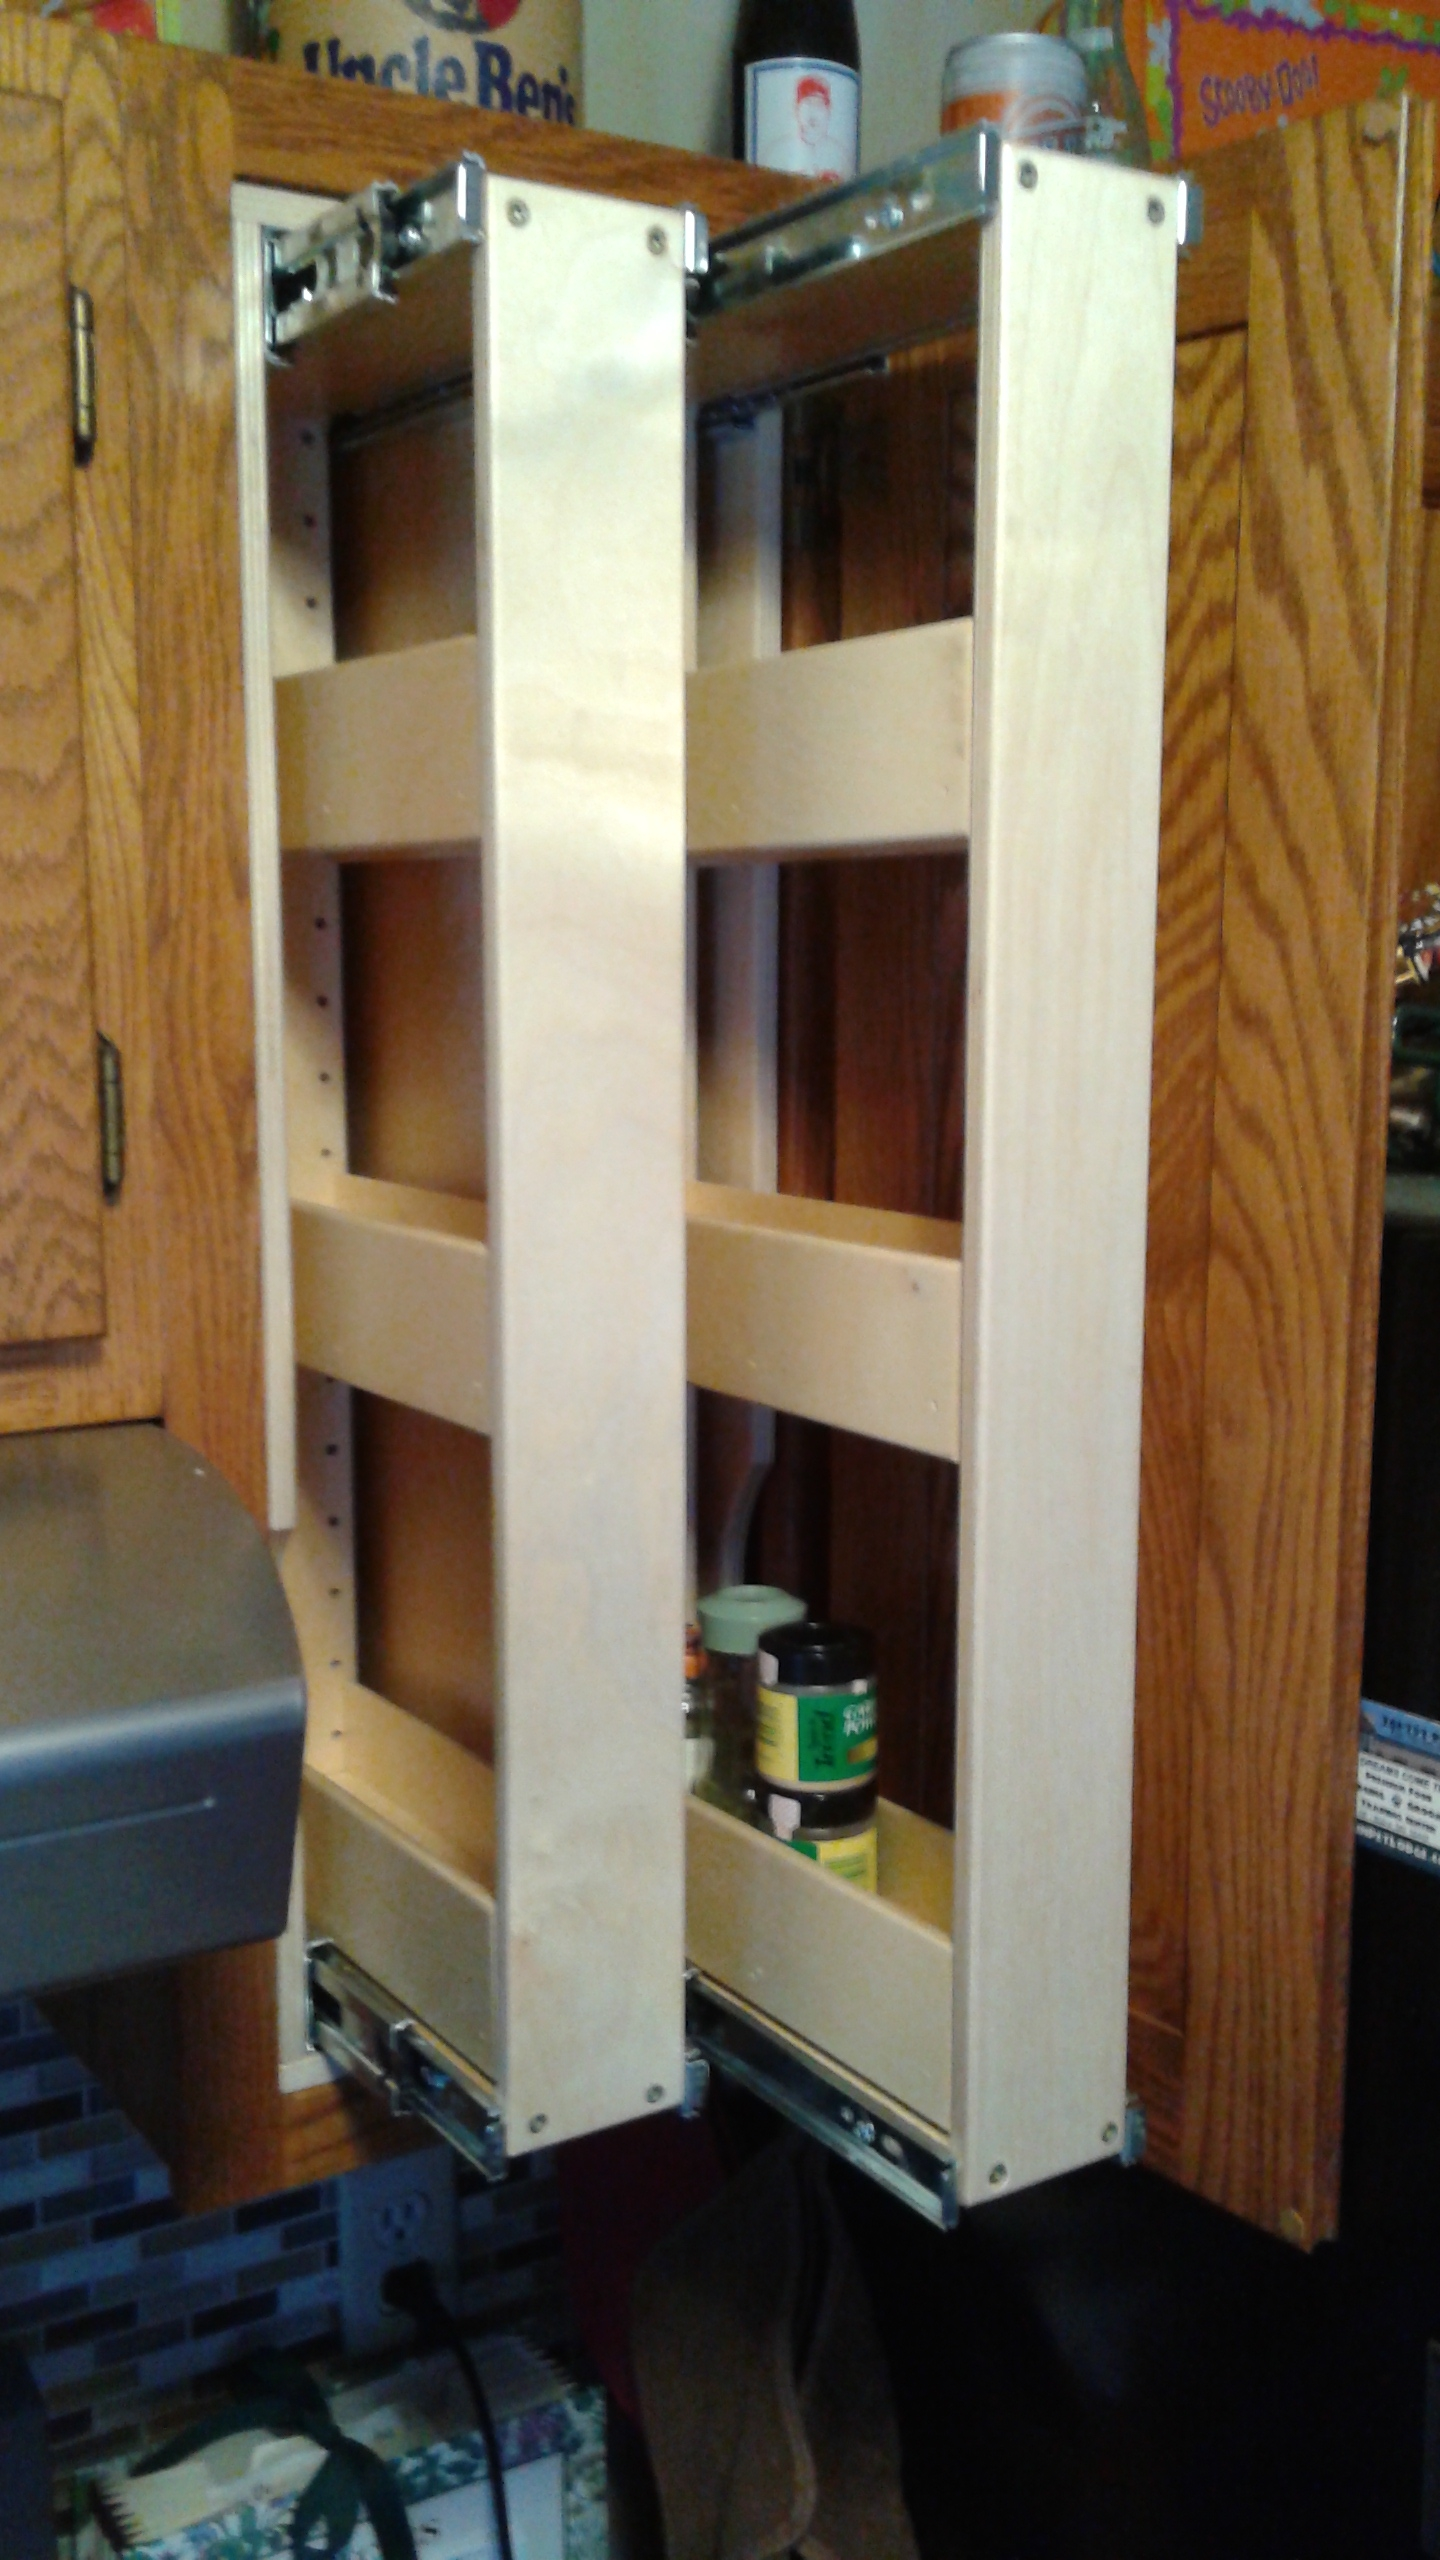 Verticle Roll Out Shelves - Help Your Shelves